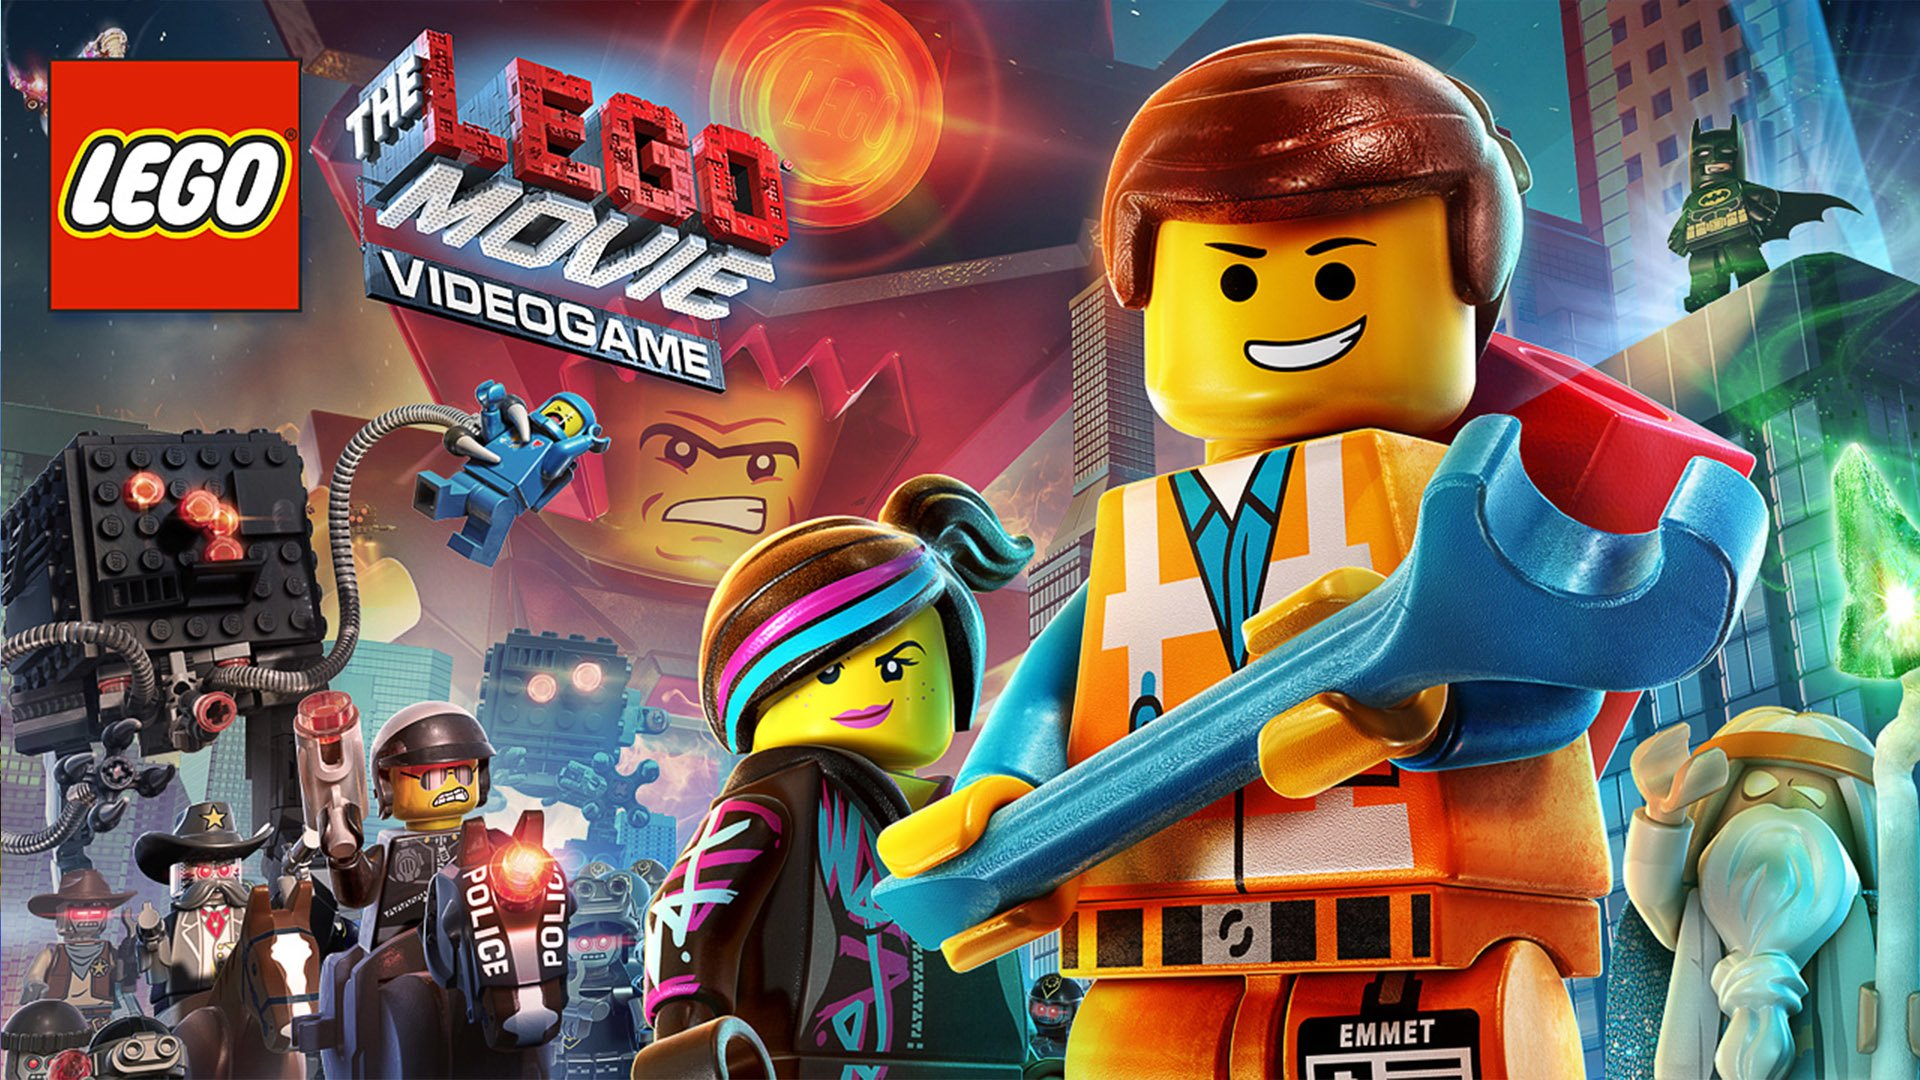 Lego Bedroom Wallpaper 11 The Lego Movie Videogame Hd Wallpapers Backgrounds